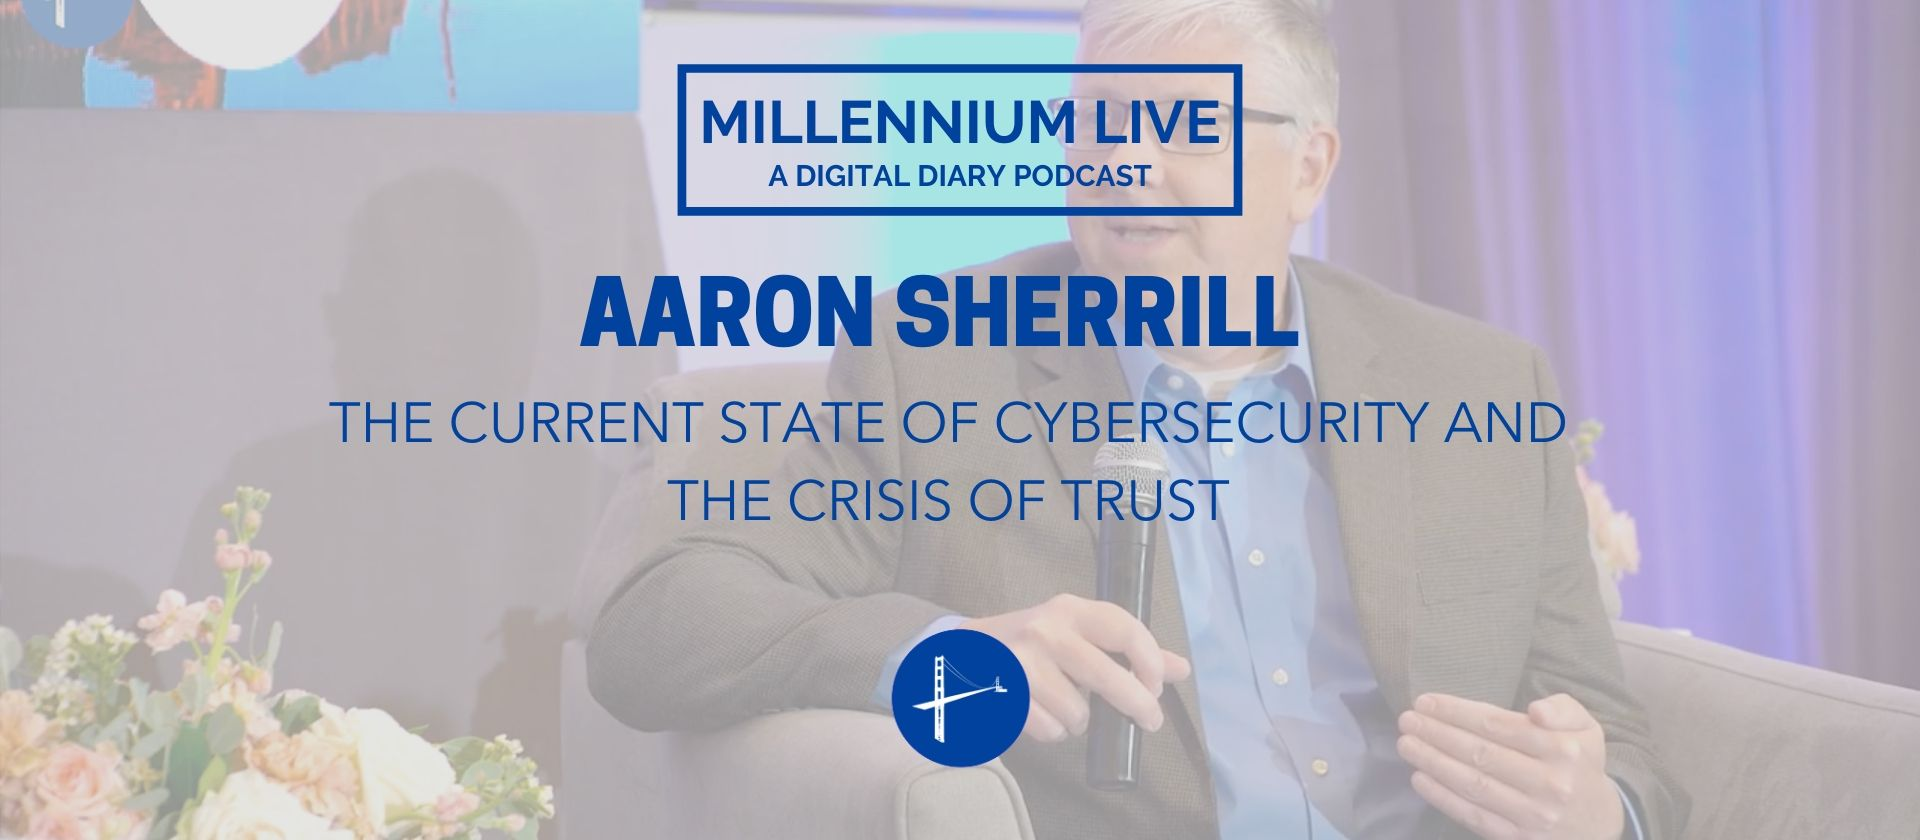 Aaron Sherrill Cybersecurity Podcast Millennium Alliance